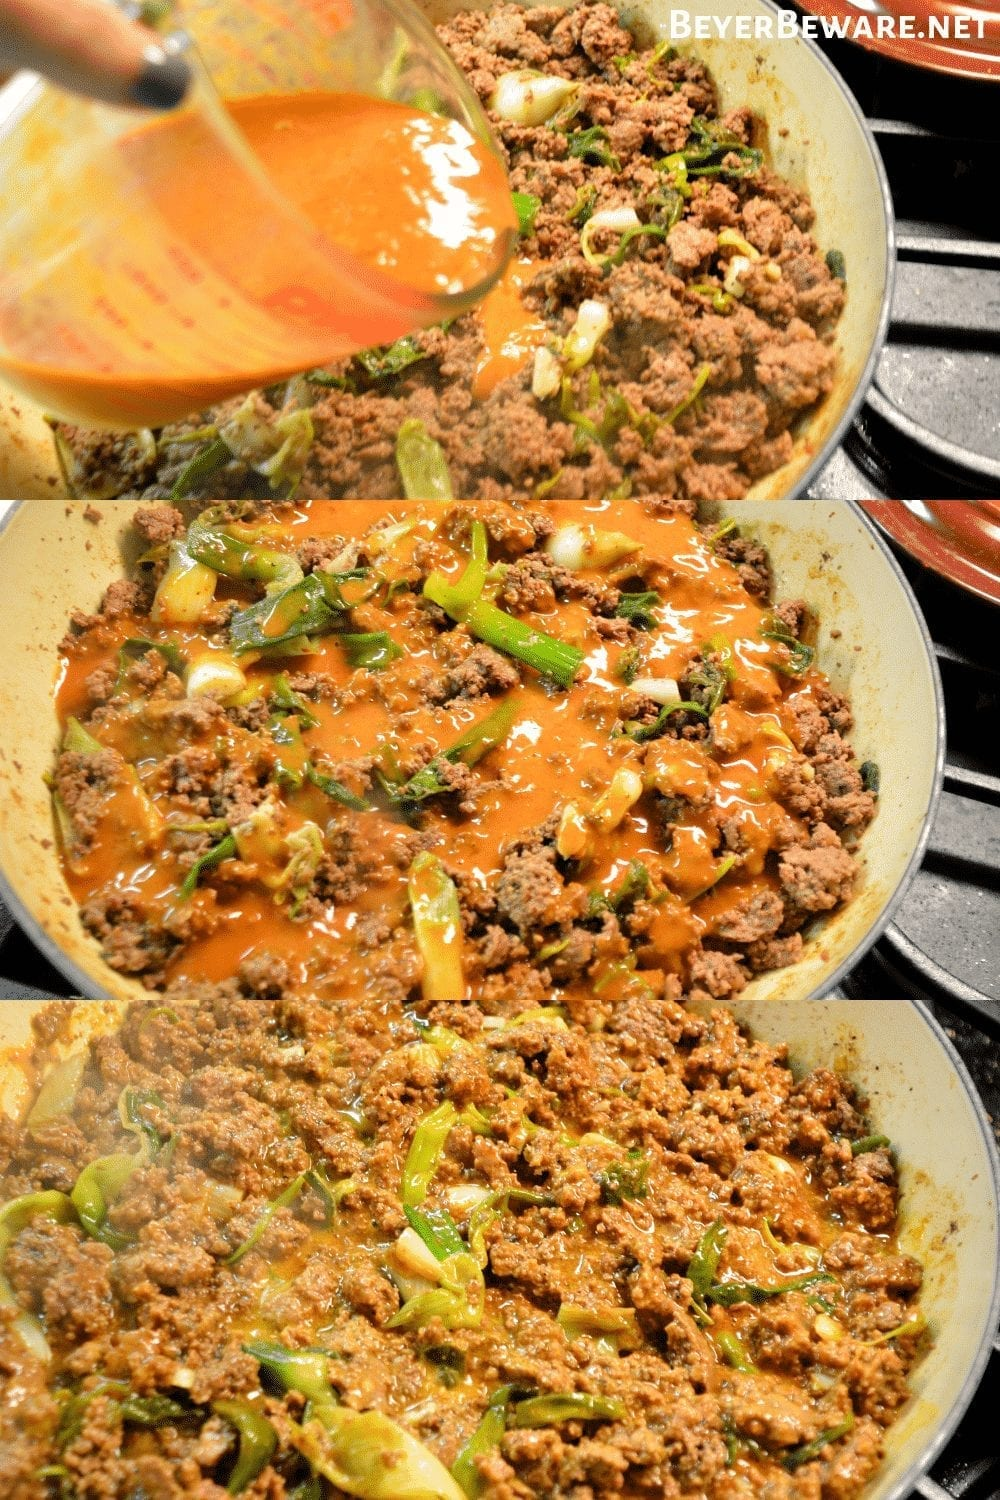 Low-Carb Taco Bake combines the favorite flavors of Mexican food in one pan for a meal that is baked to a flavorful and cheesy keto taco casserole. #LowCarbTaco #LowCarb #Keto #TacoBake #Taco #GroundBeef #MexicanFood